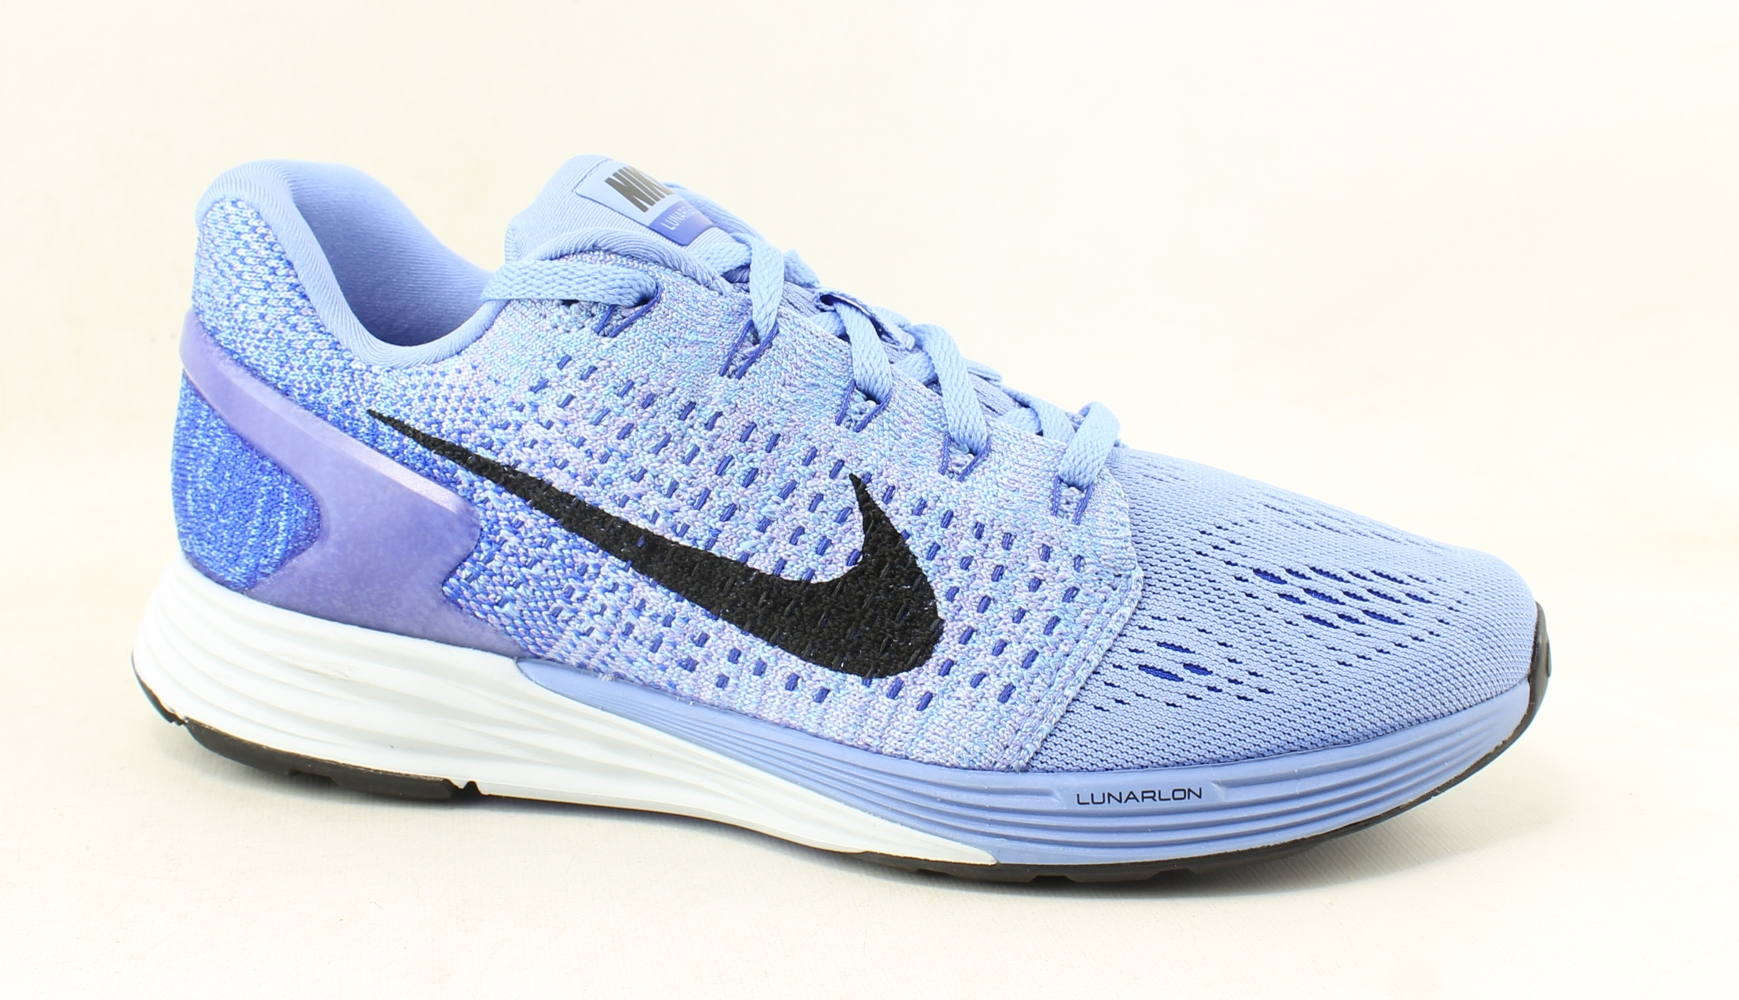 dd8822dd7bb2 Details about Nike Womens Lunarglide 7 Blue Running Shoes Size 7 (147264)